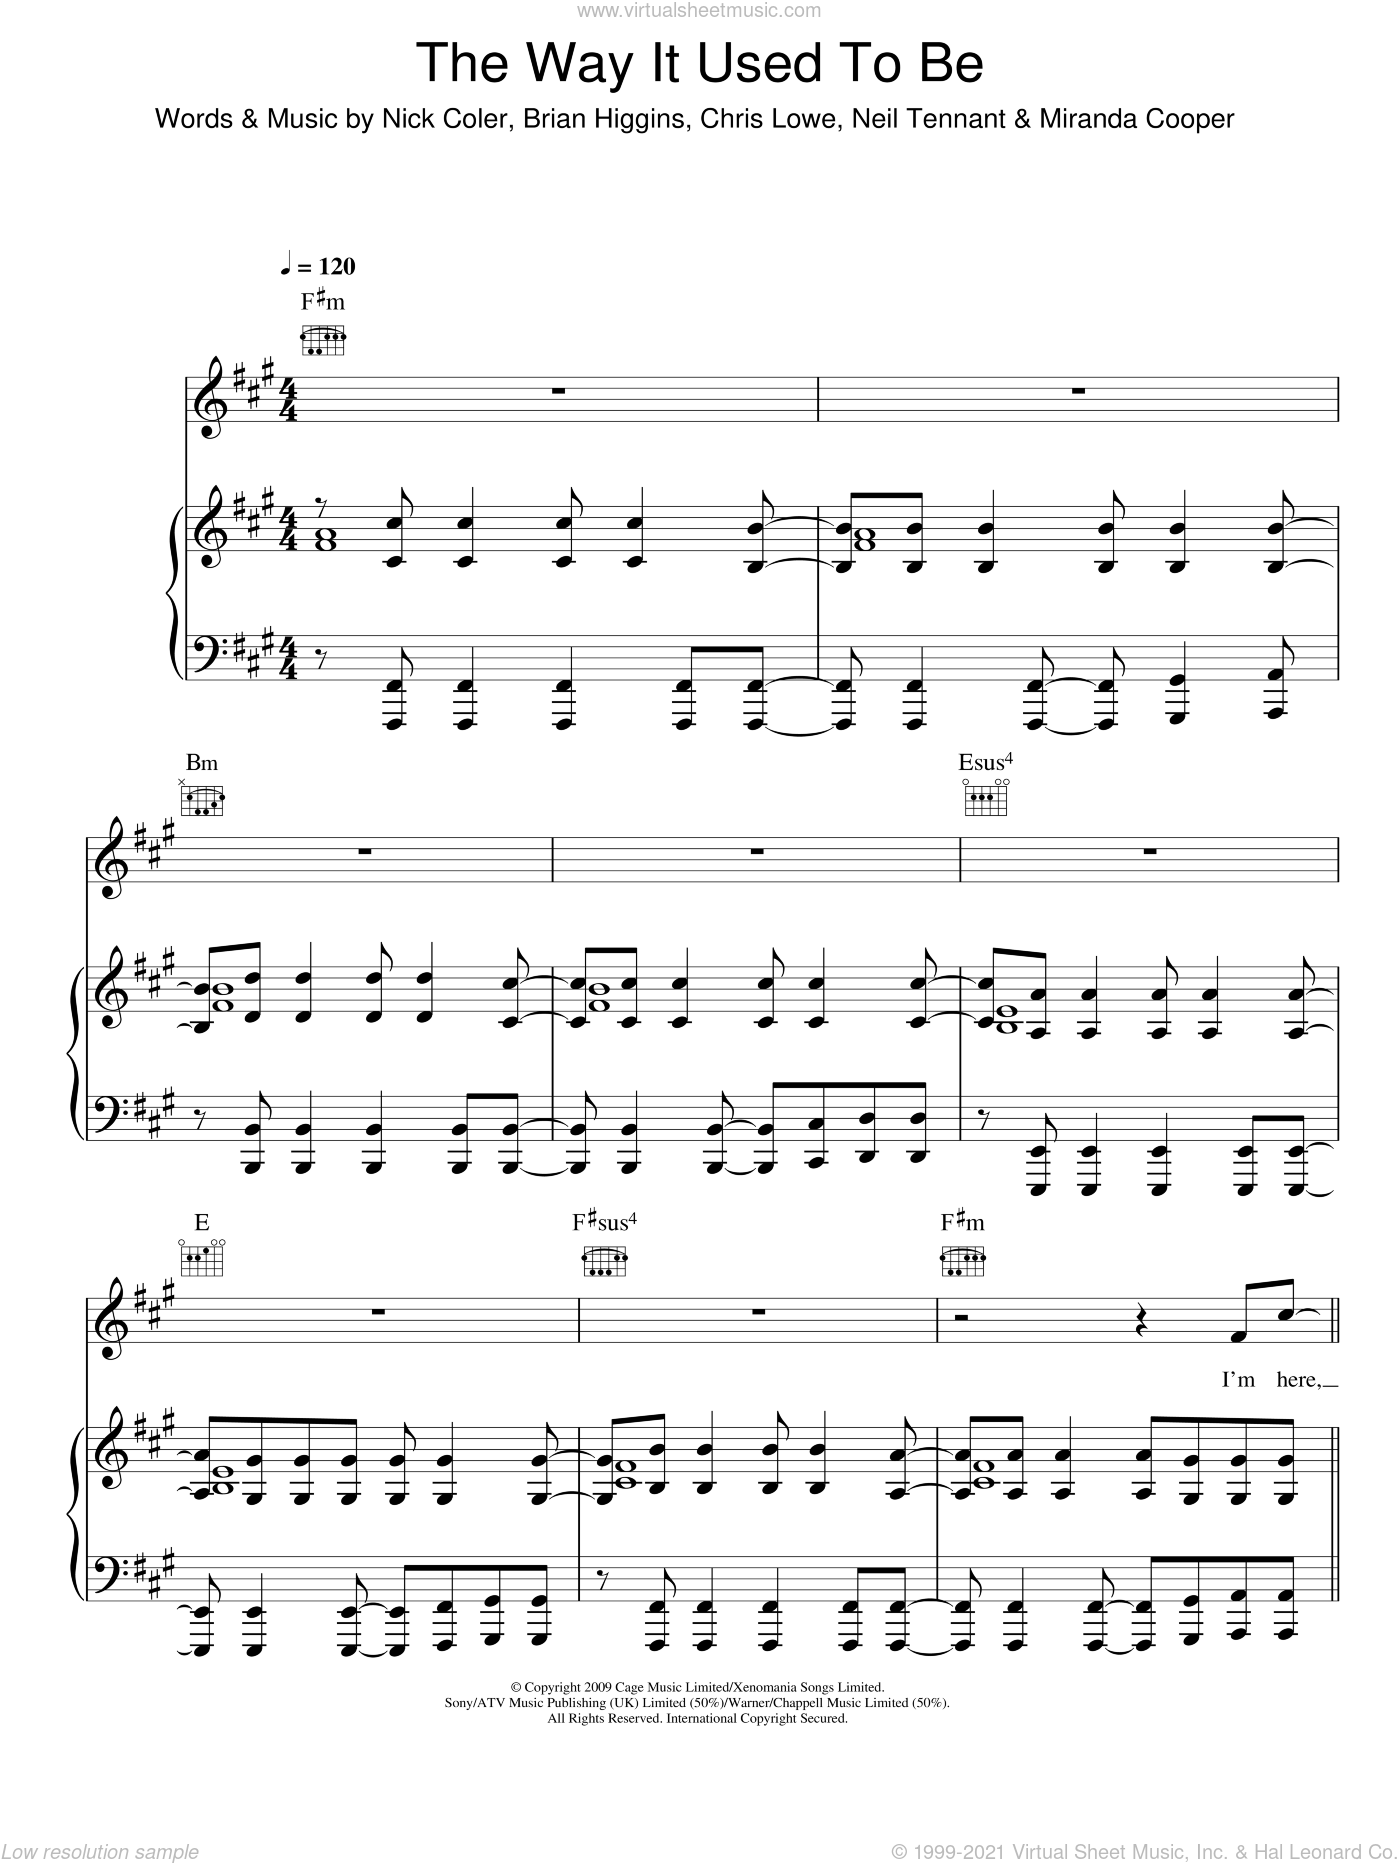 The Way It Used To Be sheet music for voice, piano or guitar by The Pet Shop Boys, Brian Higgins, Chris Lowe, Miranda Cooper, Neil Tennant and Nick Coler, intermediate skill level